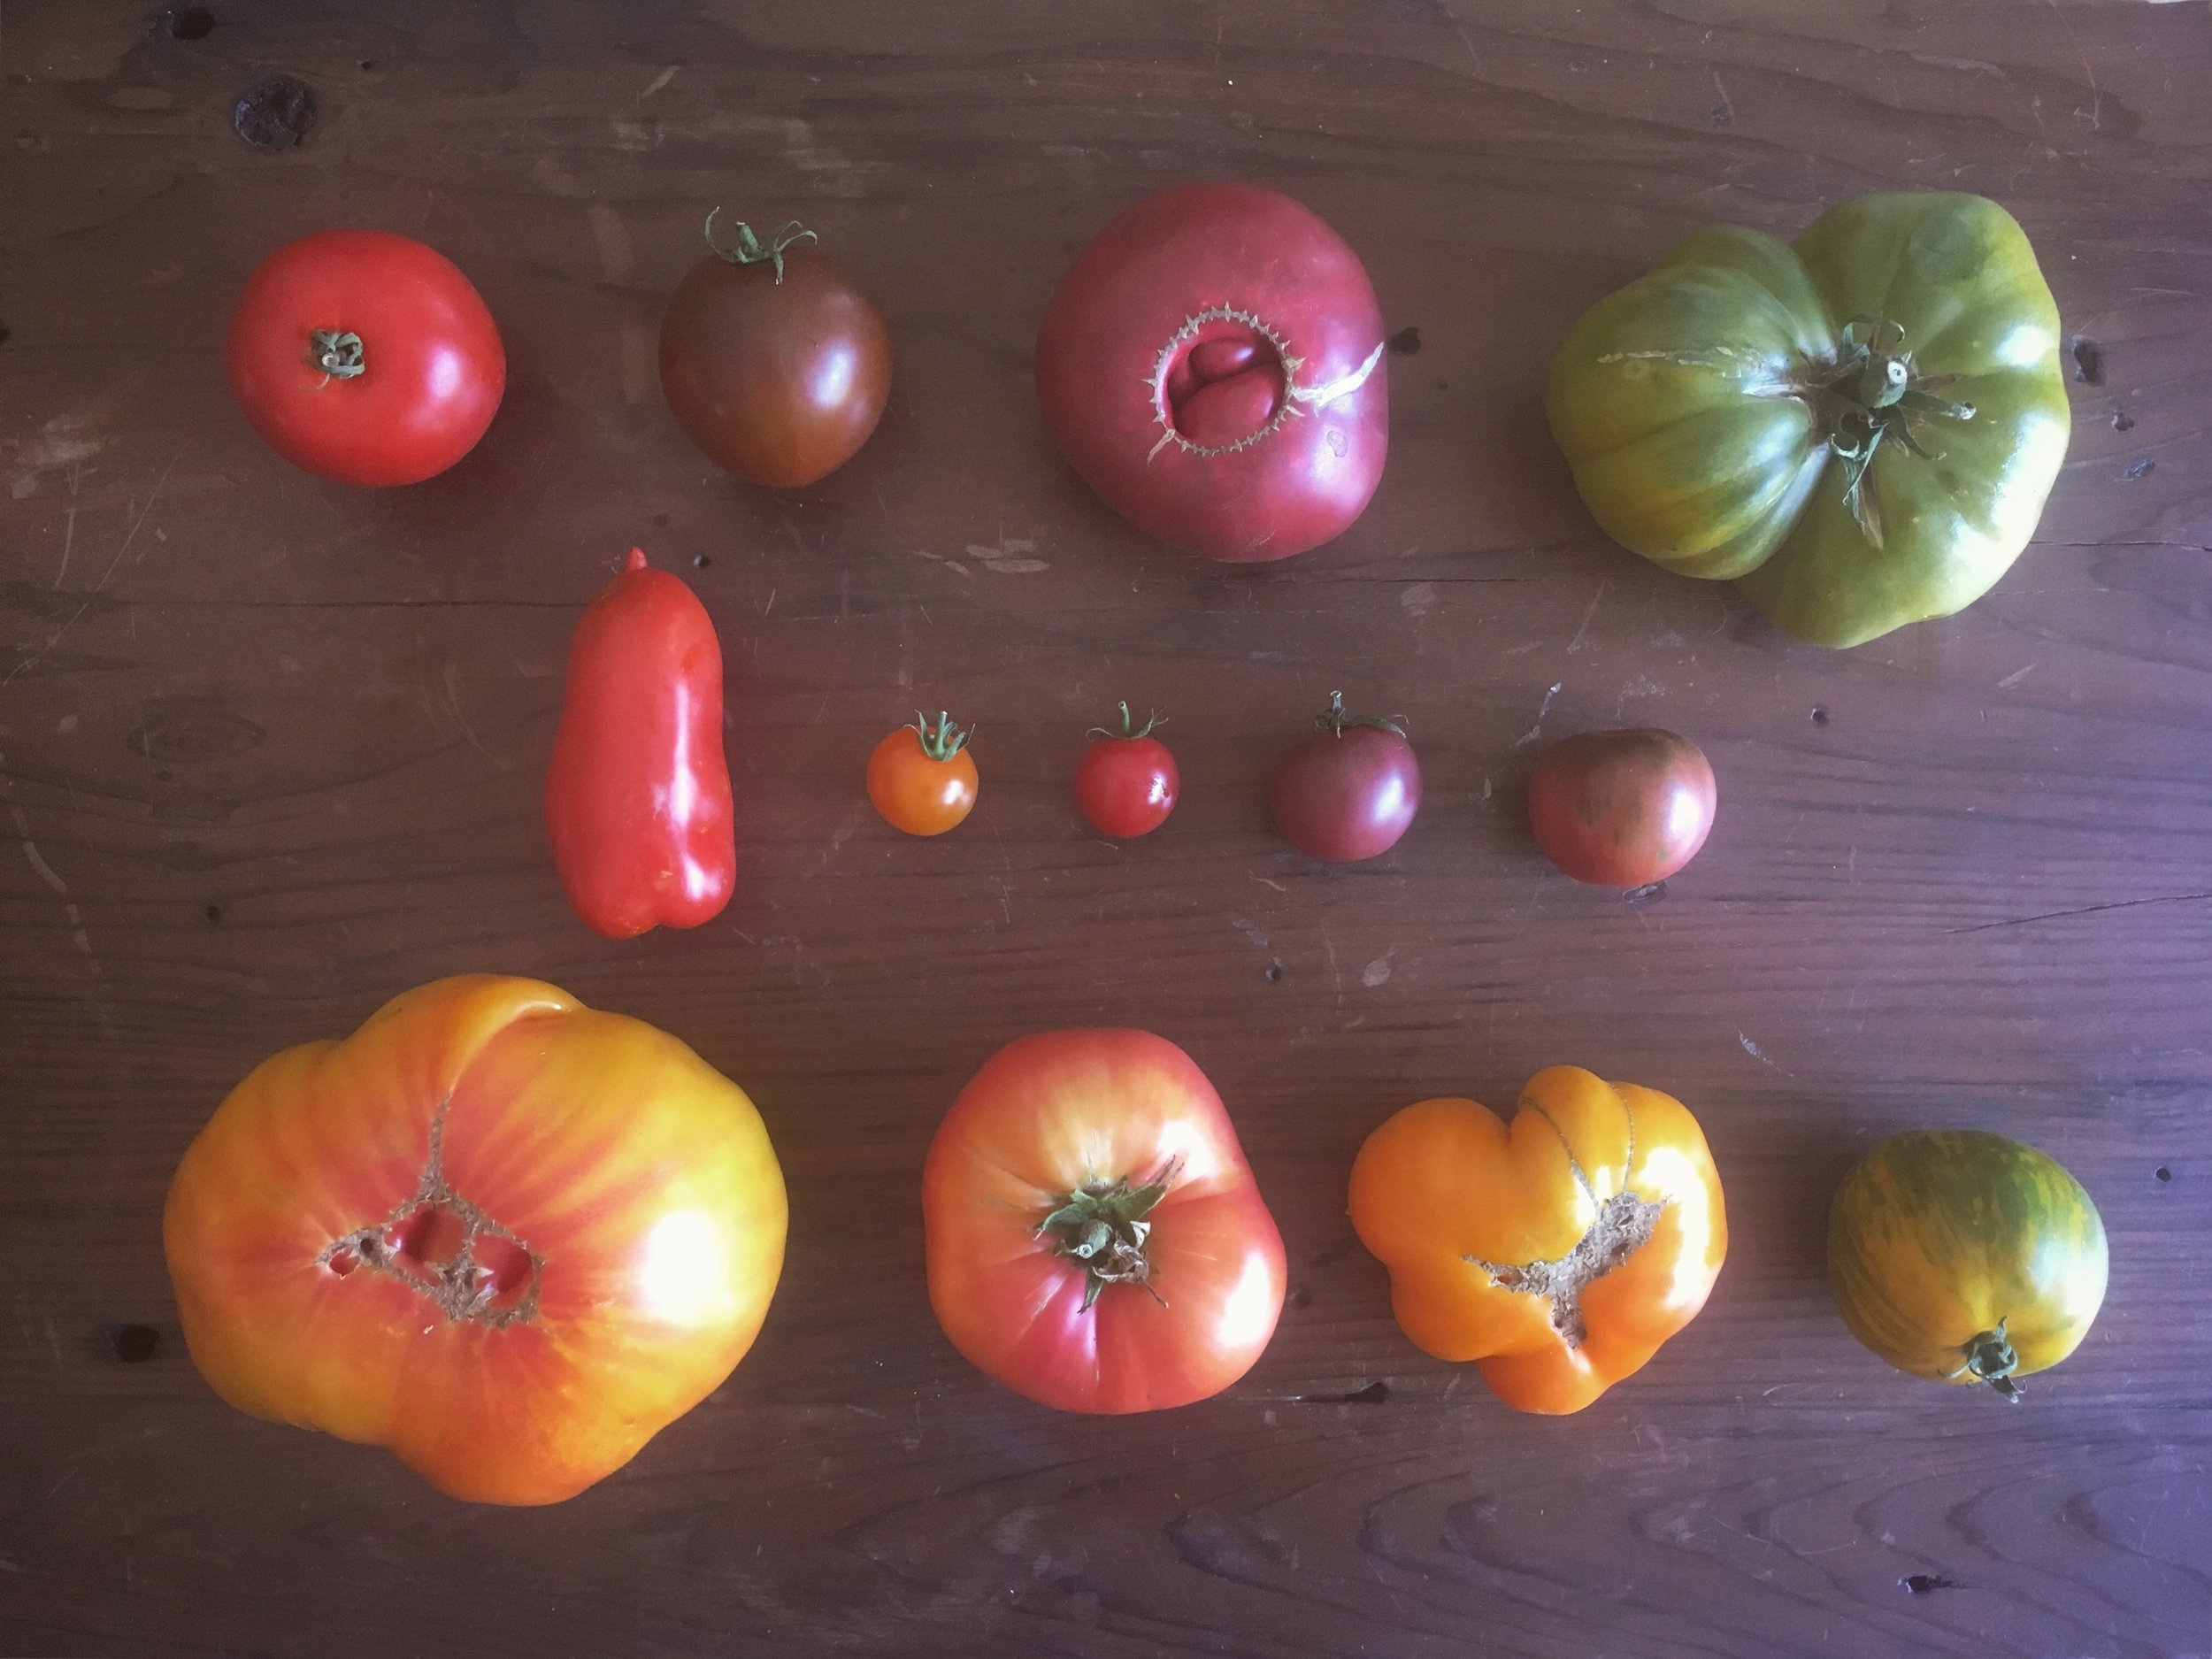 2017's Tomato Varieties: (Top to bottom like reading a book) New Girl, Black Prince, Cherokee Purple, Aunt Ruby's German Green, Paisano San Marzano, Sungold, Supersweet 100, Black Cherry, Black Vernissage, Striped German, Brandywine, Yellow Brandywine, Green Zebra. Which is your favorite?